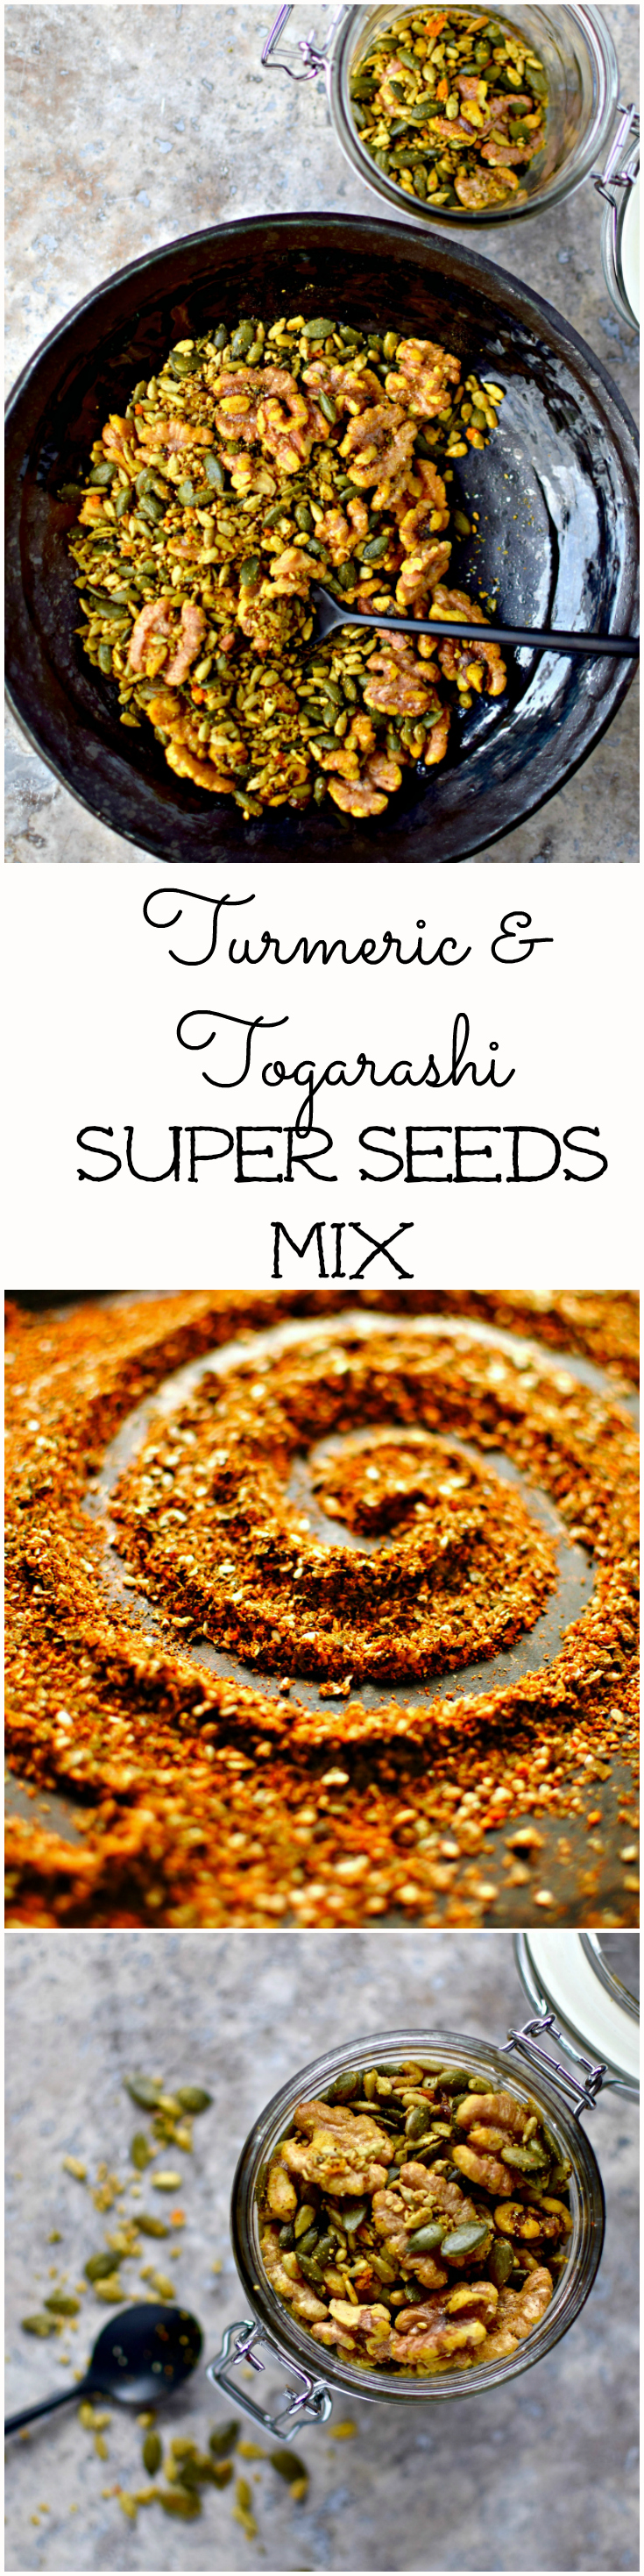 A kind of savory granola minus the oats, this turmeric and togarashi super seed mix is wonderful straight out of a jar, swirled into yogurt and sprinkled over all kinds of savory dishes. A super-easy paleo, sugar-free and vegan recipe.